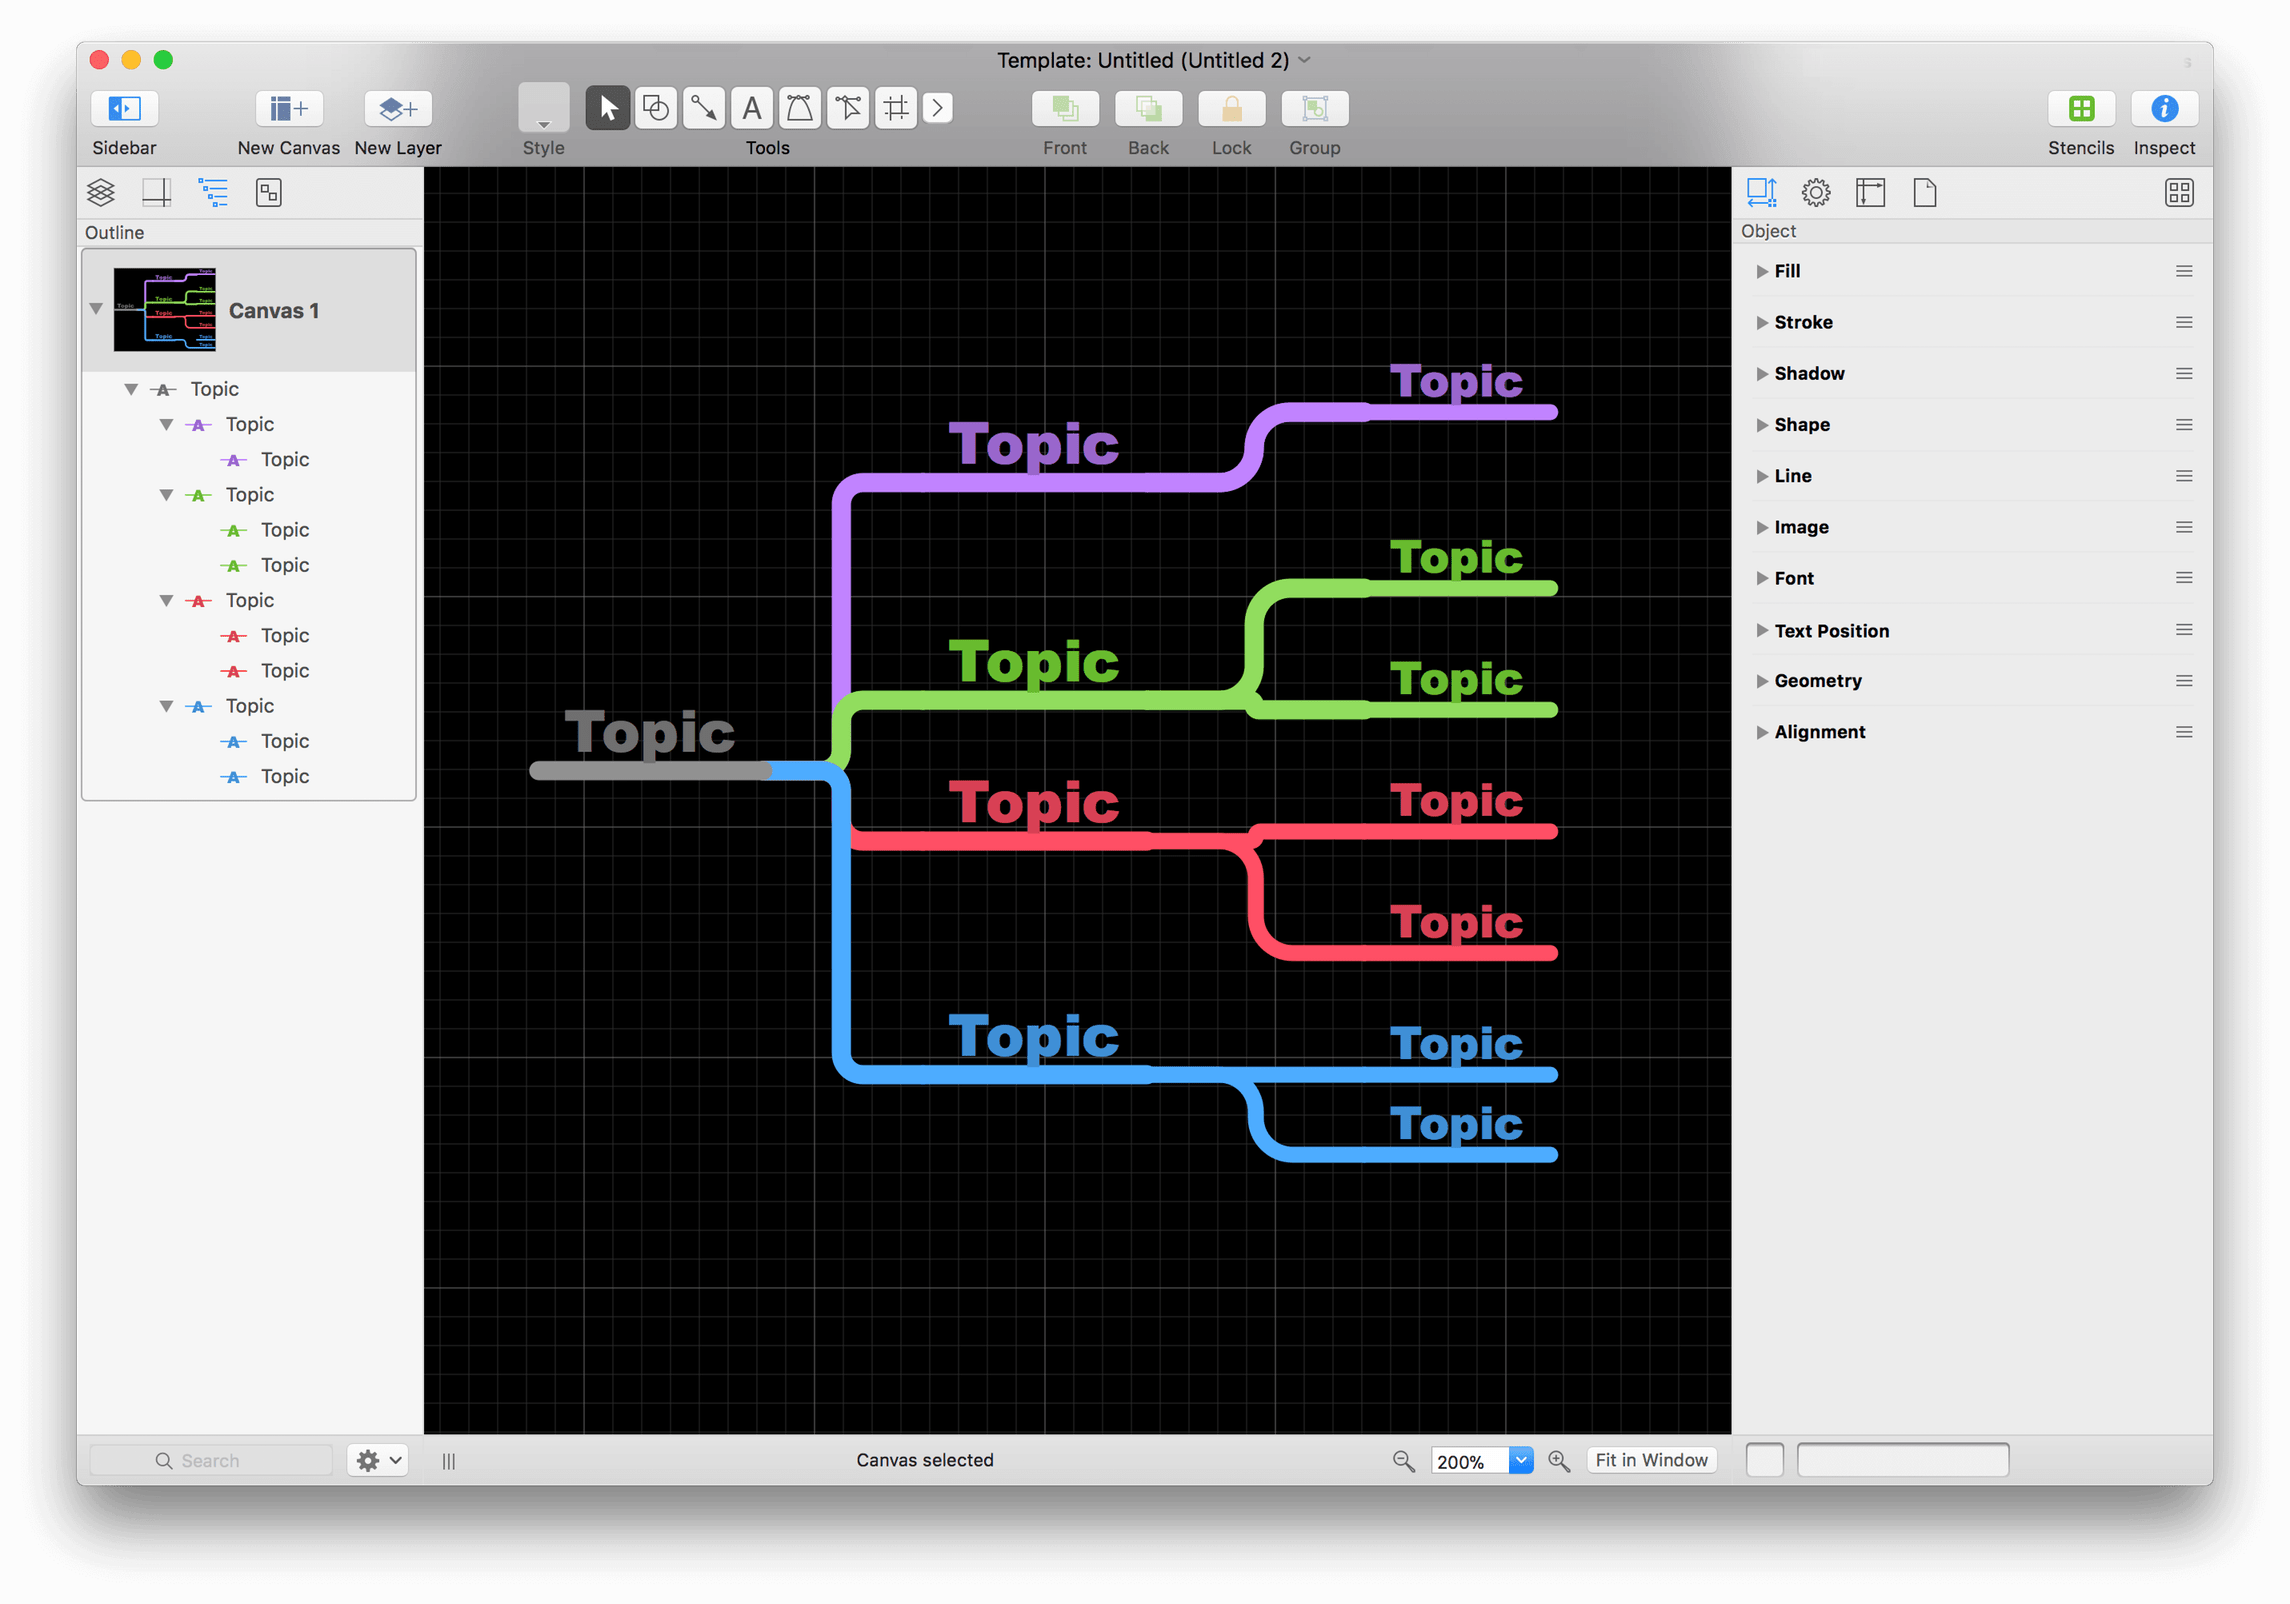 The template, whose styles you want to change, opens in OmniGraffle as an Untitled template file.